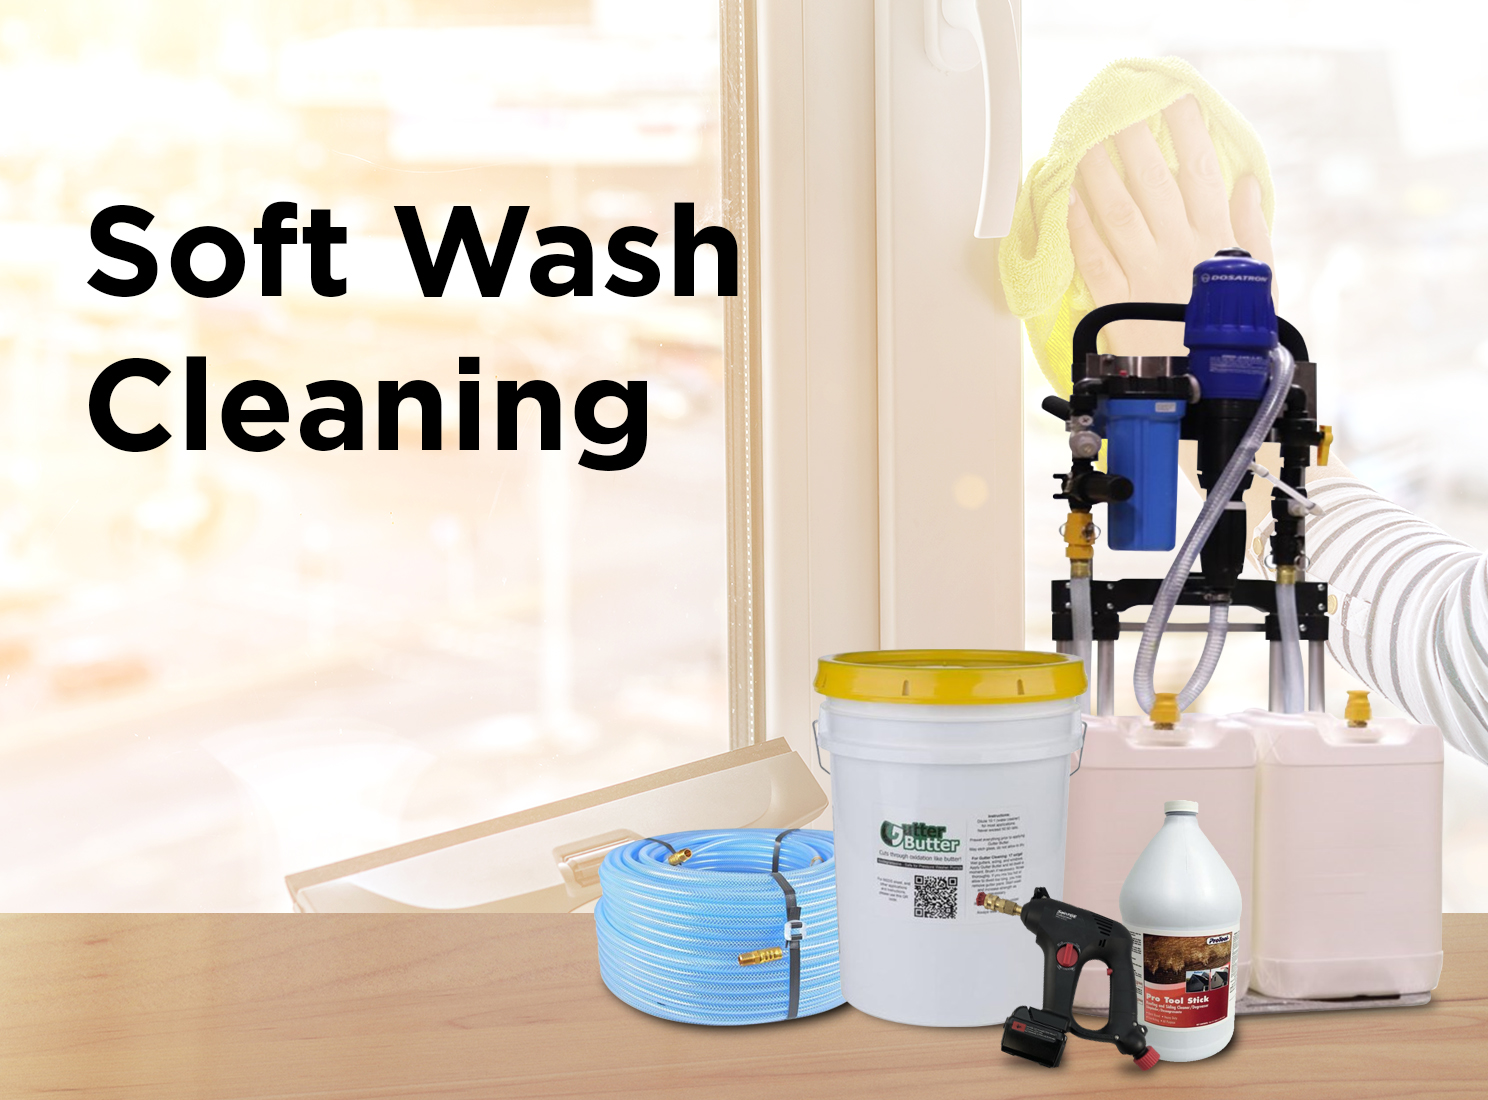 Softwash Cleaning